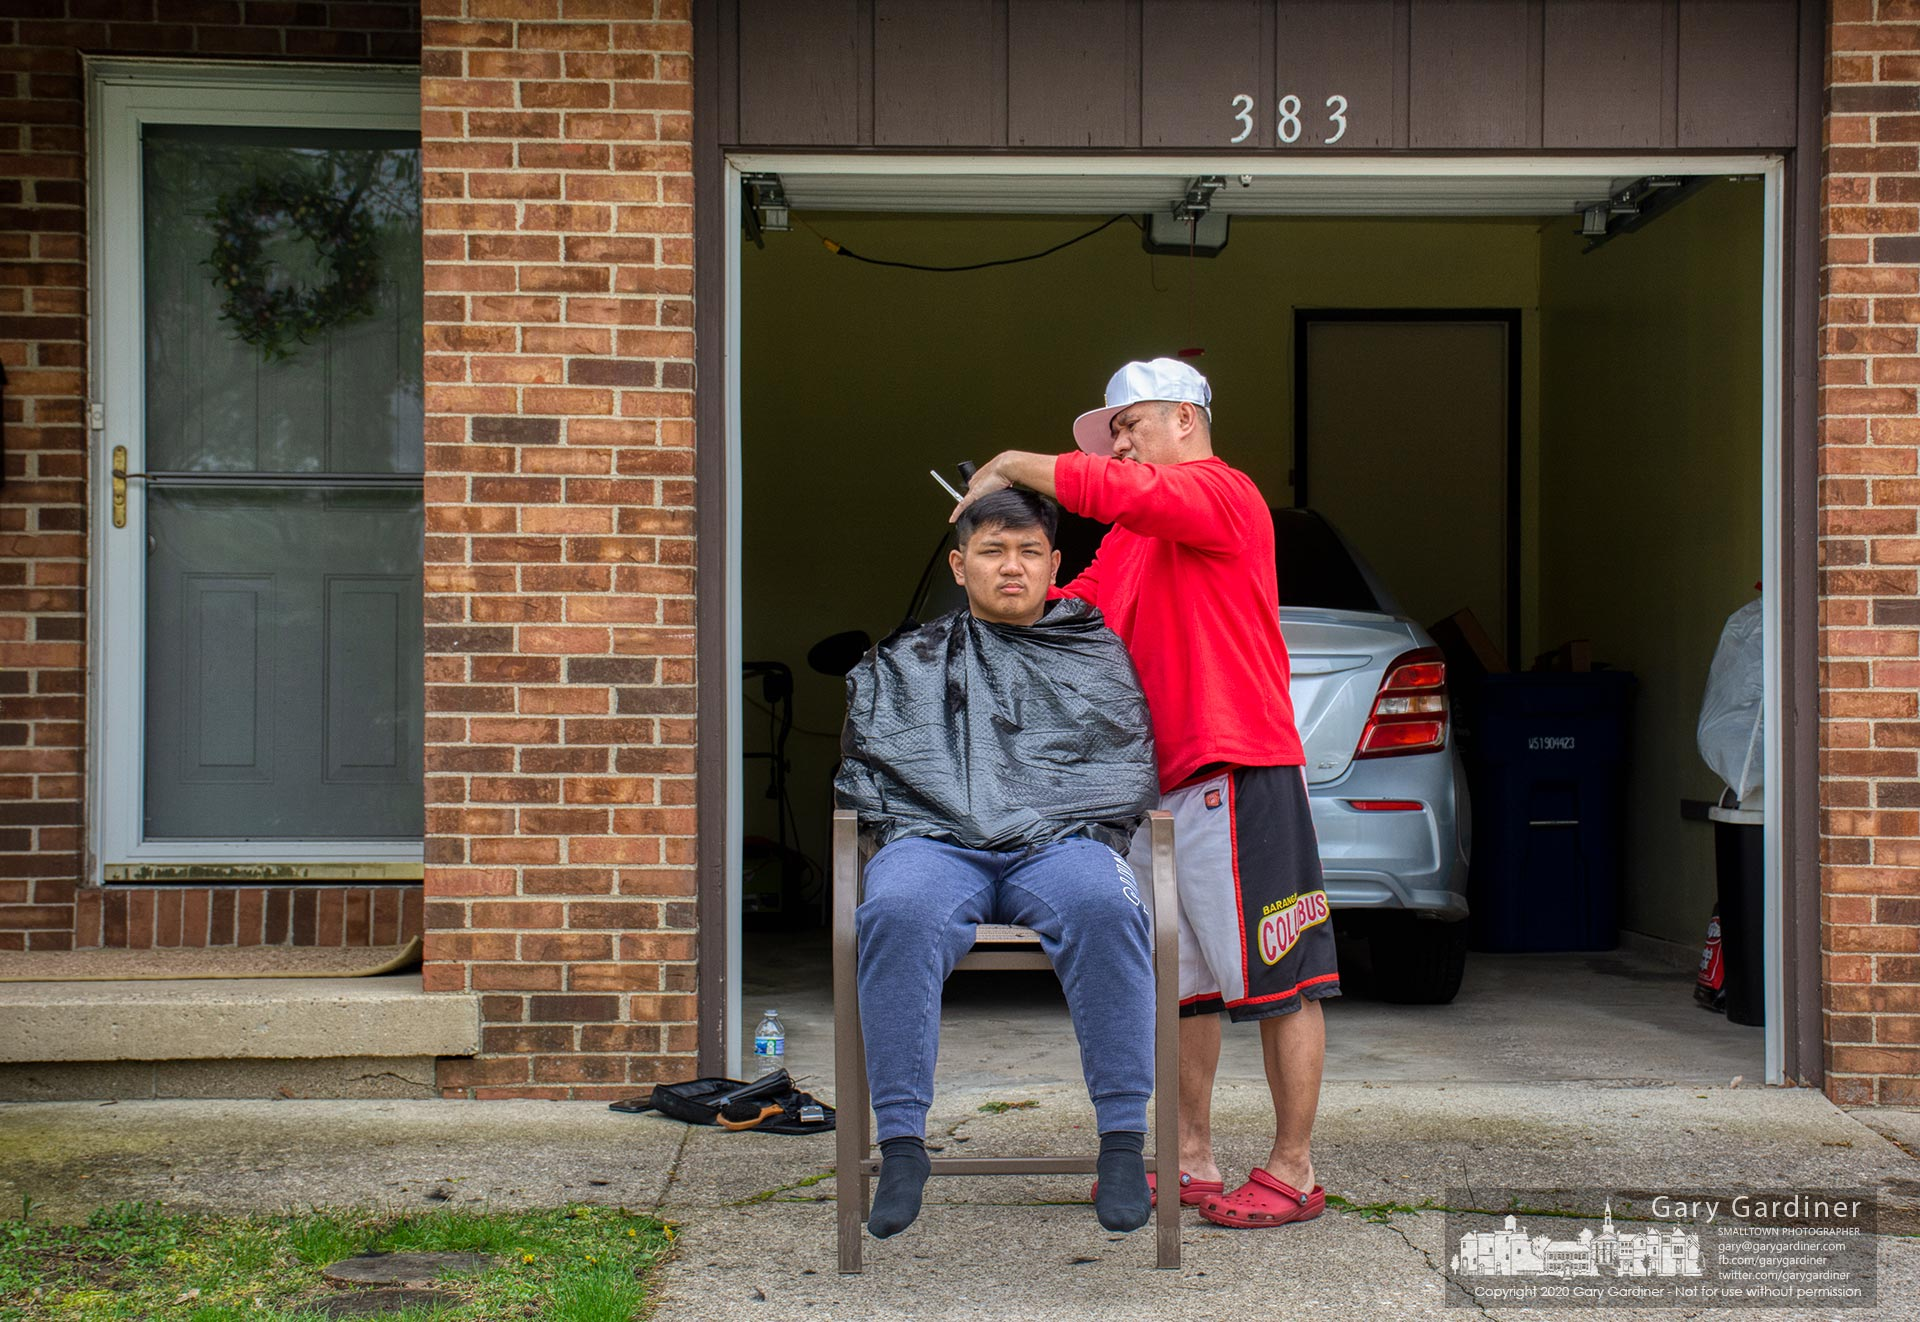 A young man gets his hair cut in the driveway of his duplex apartment on Huber Village Blvd. My Final Photo for May 1, 2020.